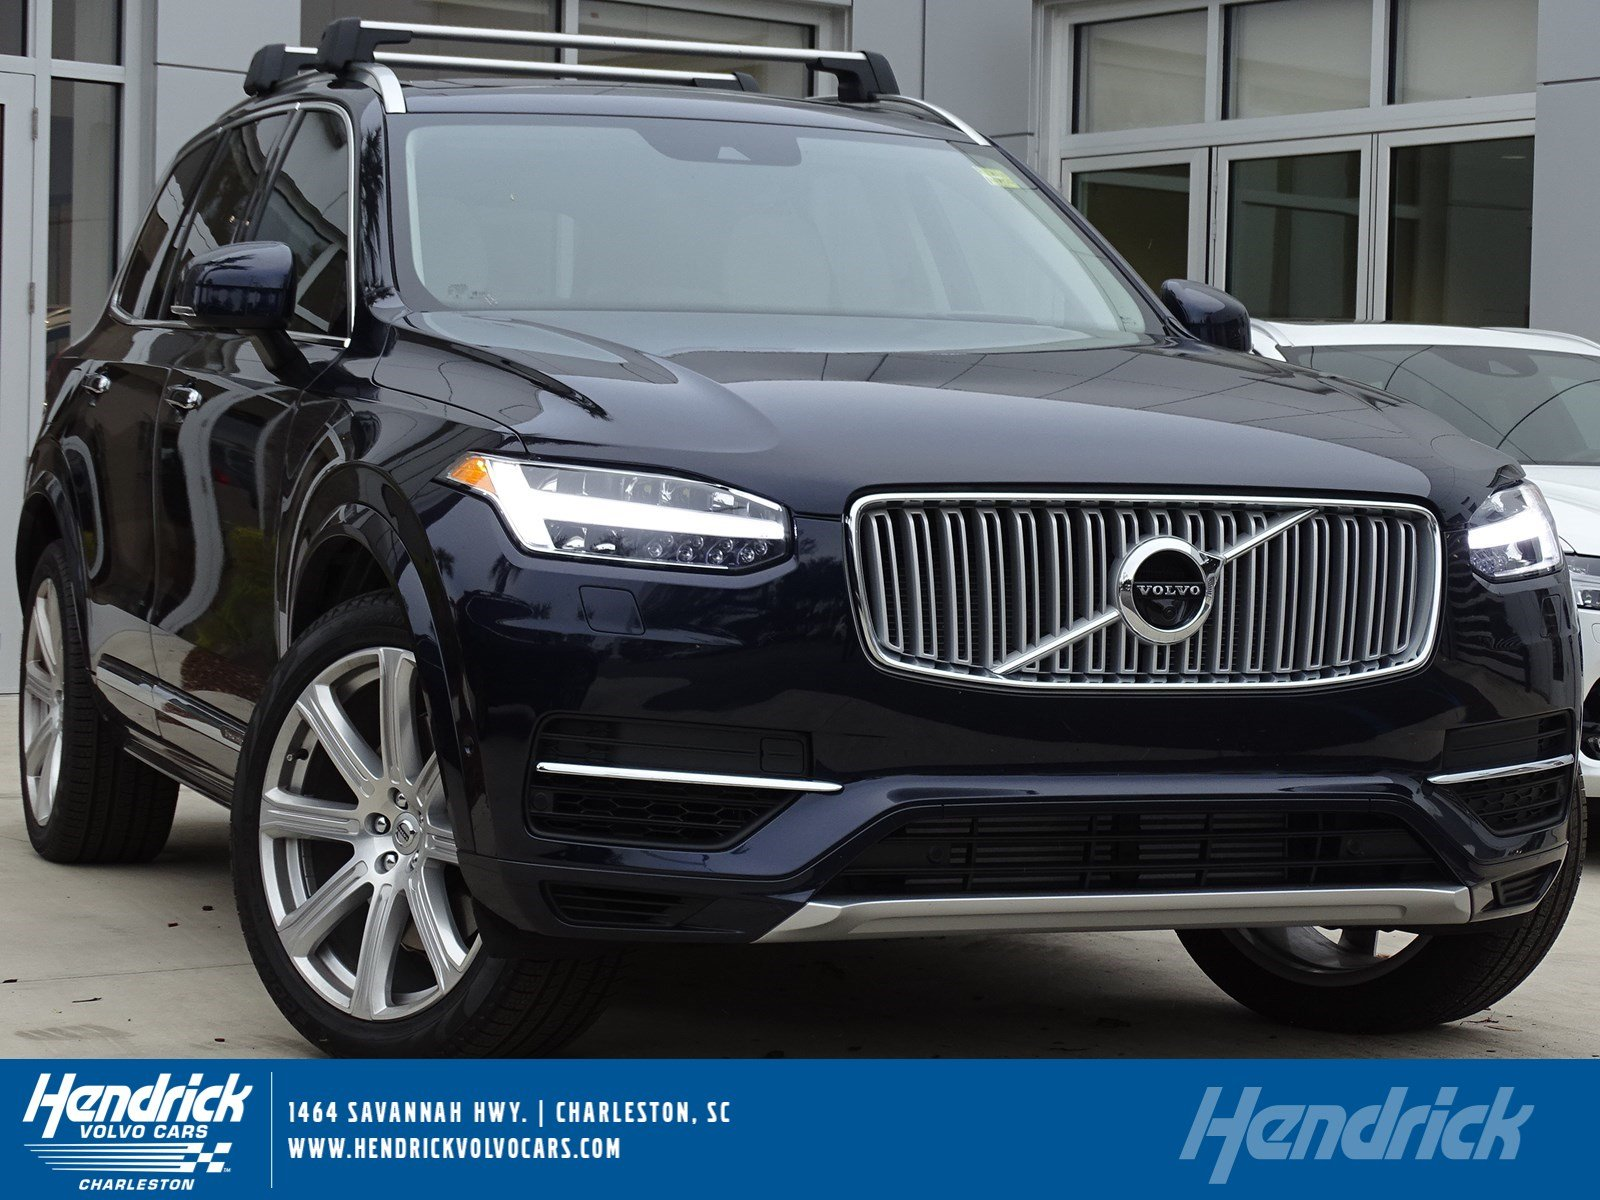 Volvo Used Cars for Sale Near Me Luxury Volvo Cars for Sale Nationwide Autotrader